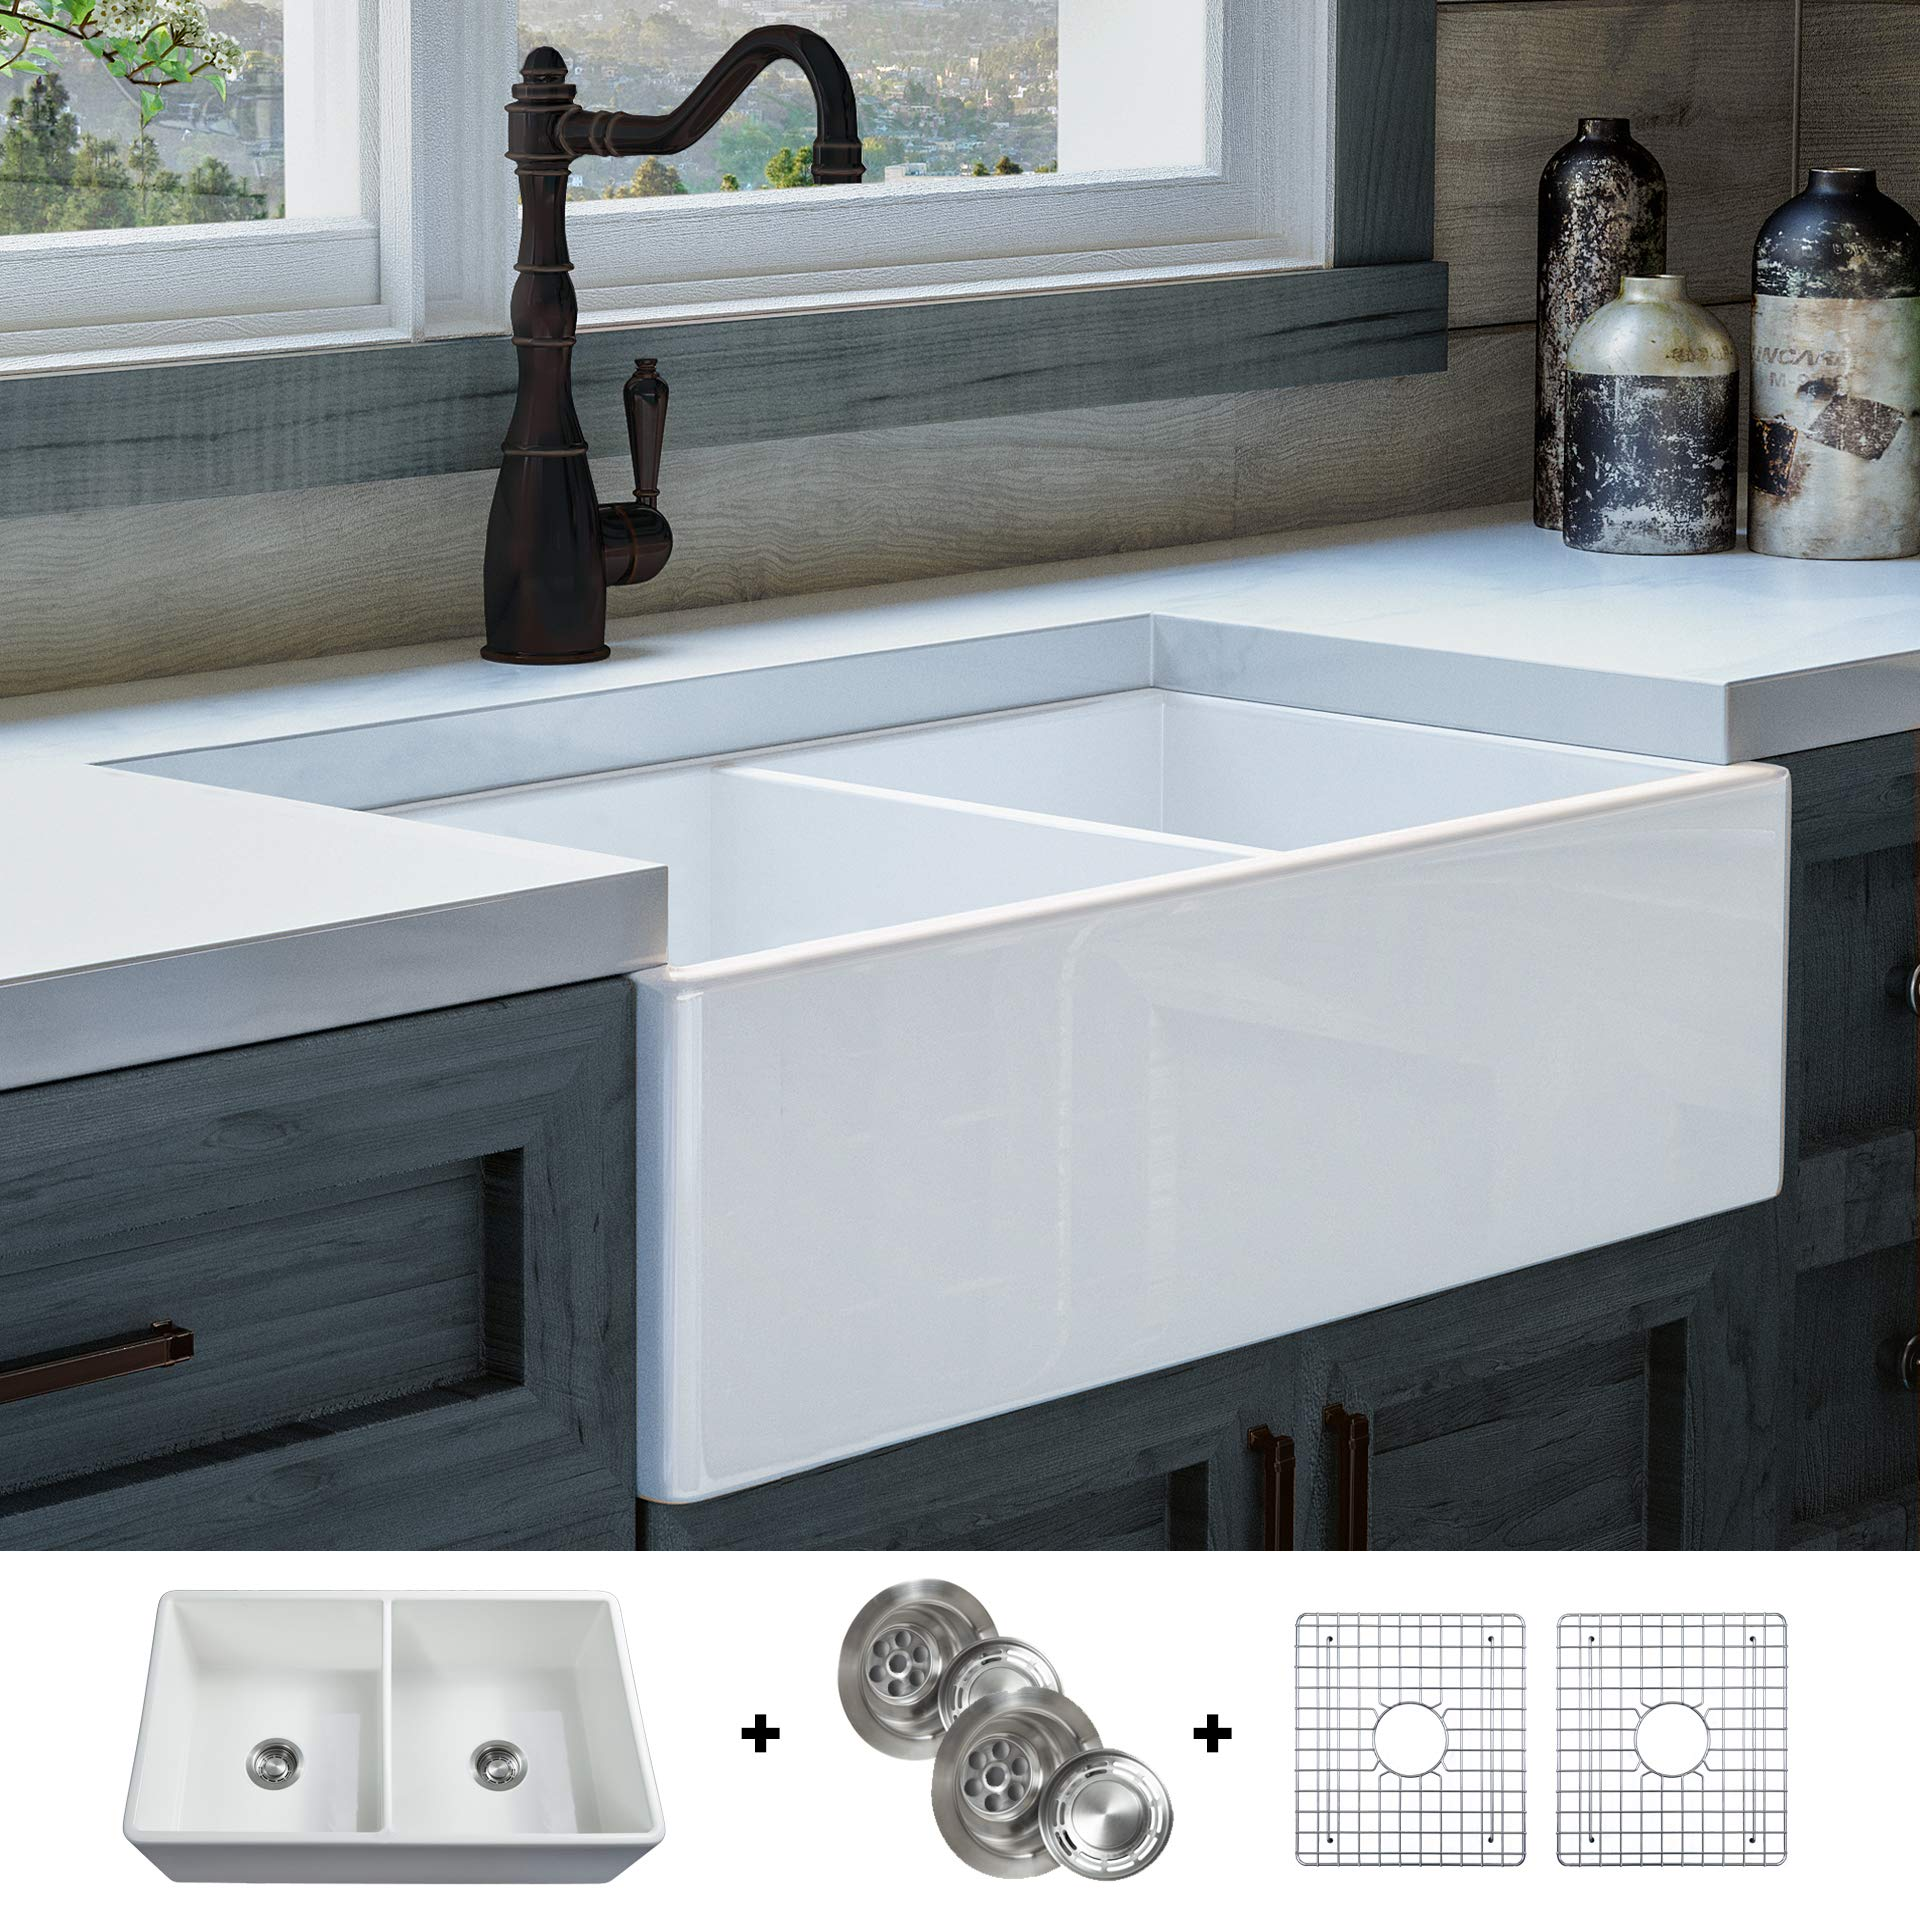 Luxury 33 inch Pure Fireclay Modern Farmhouse Kitchen Sink in White, Double Bowl, Flat Front, includes Stainless Steel Grids and Drains, FSW1003 by Fossil Blu …